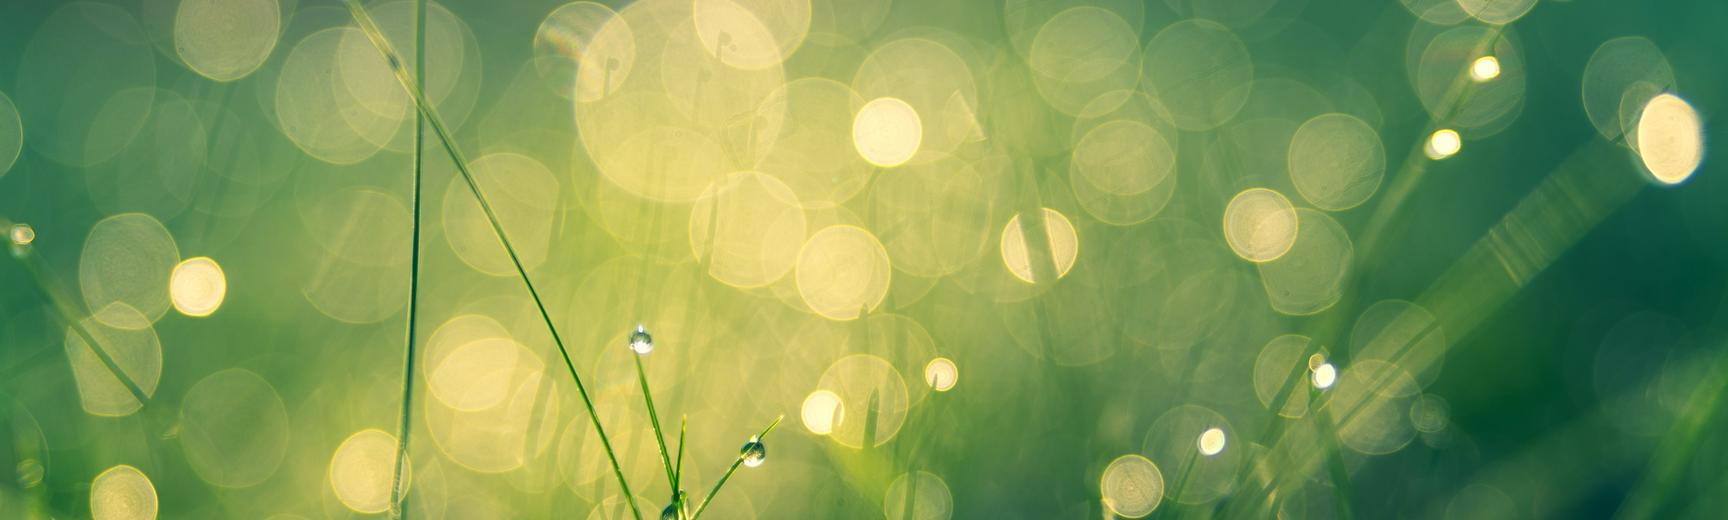 Unfocussed photo of green grass covered in rain drops caught in the sunlight